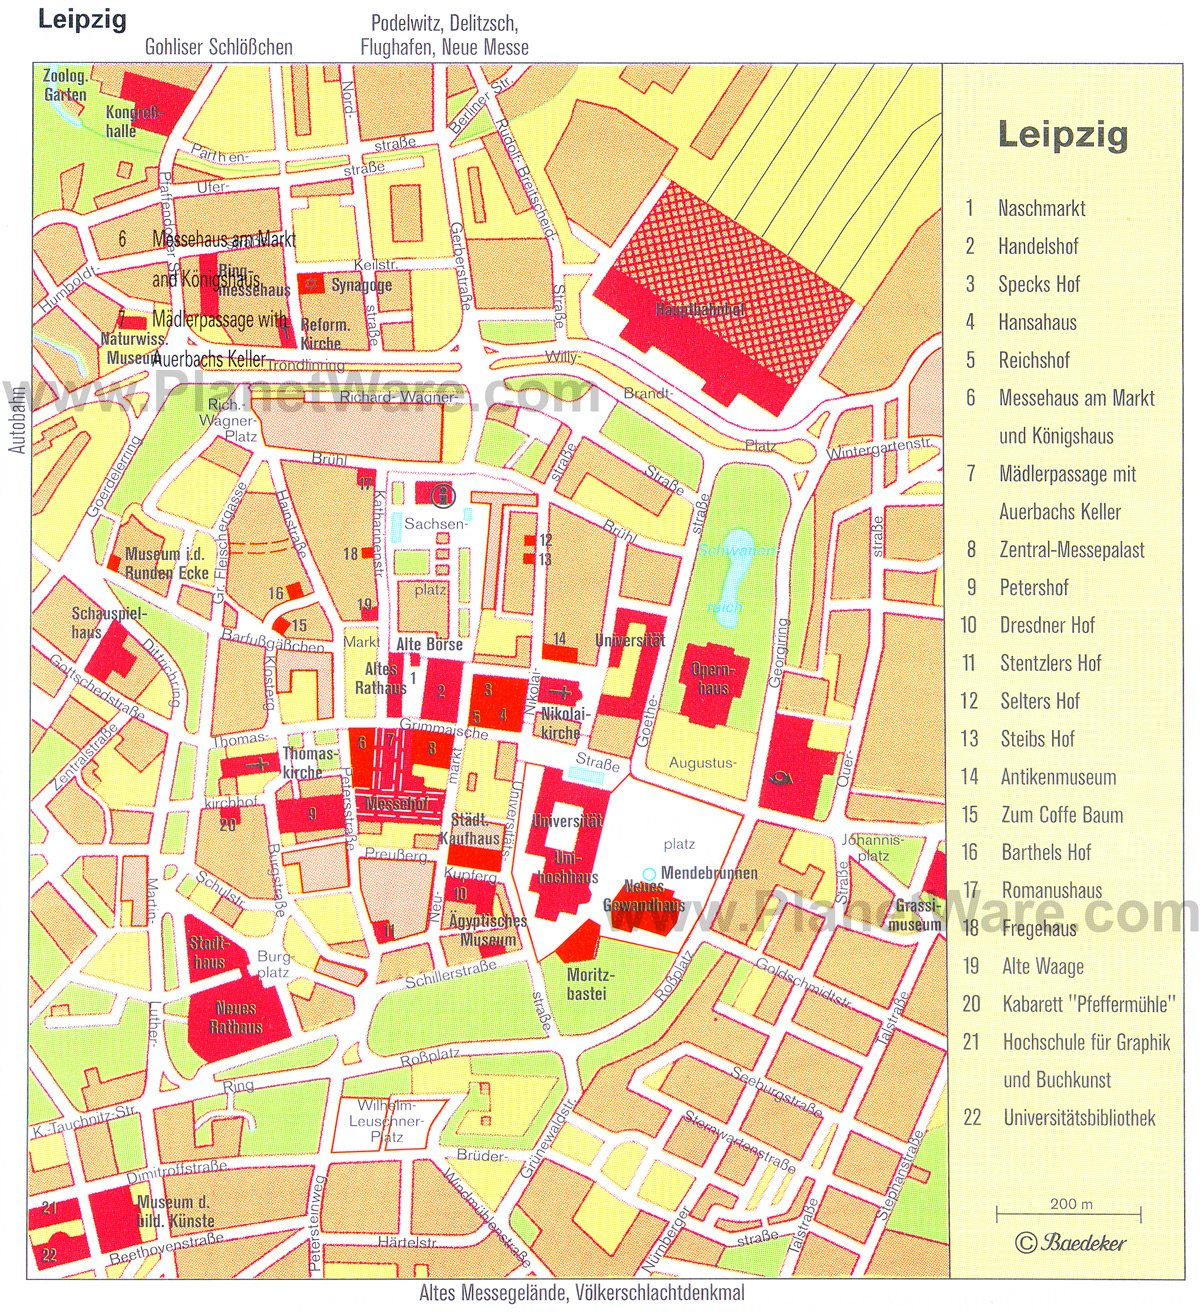 14 TopRated Tourist Attractions in Leipzig – Germany Tourist Attractions Map